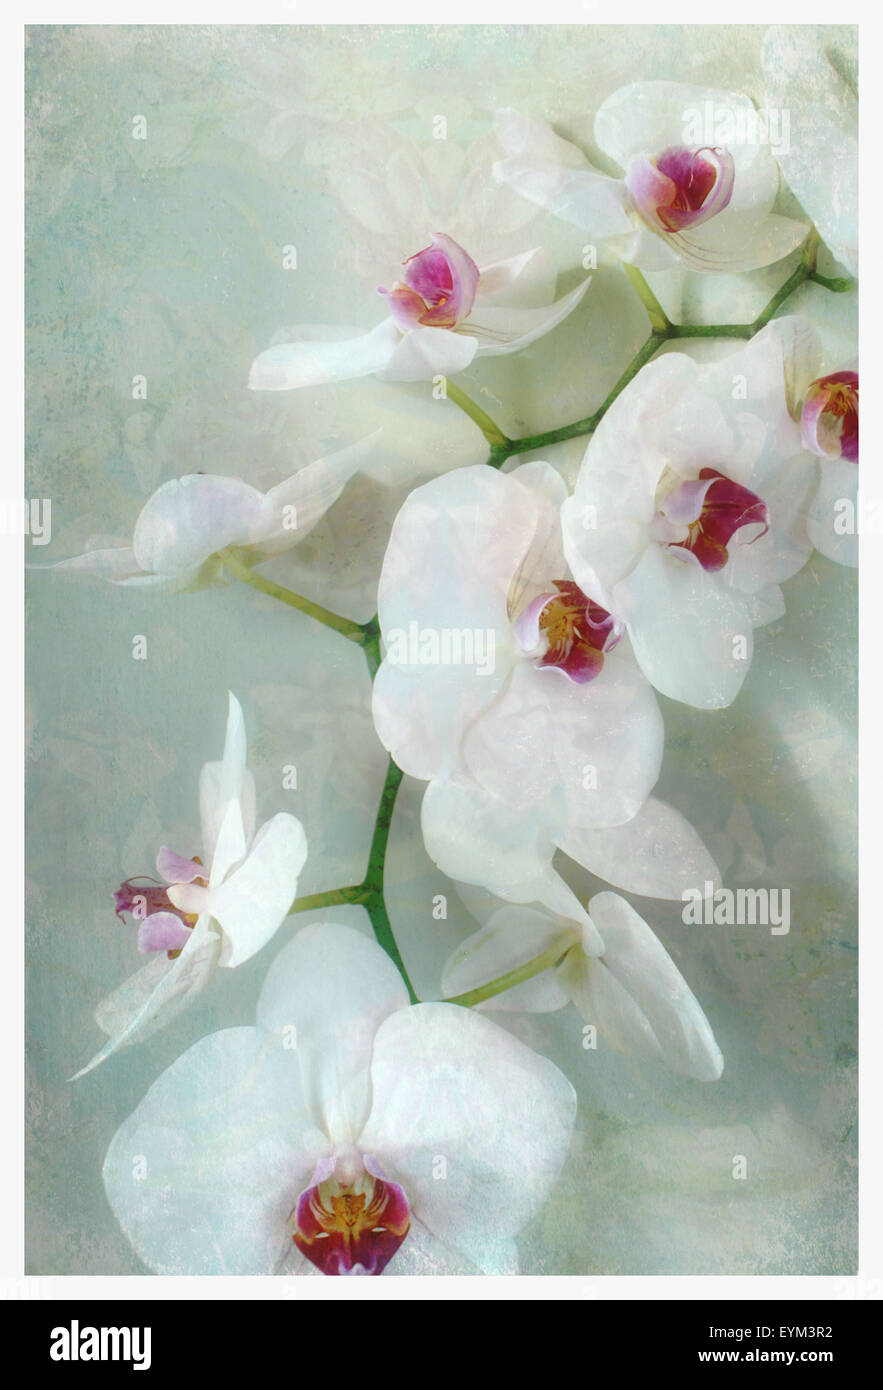 Composing of a white orchid with lucent texture, - Stock Image